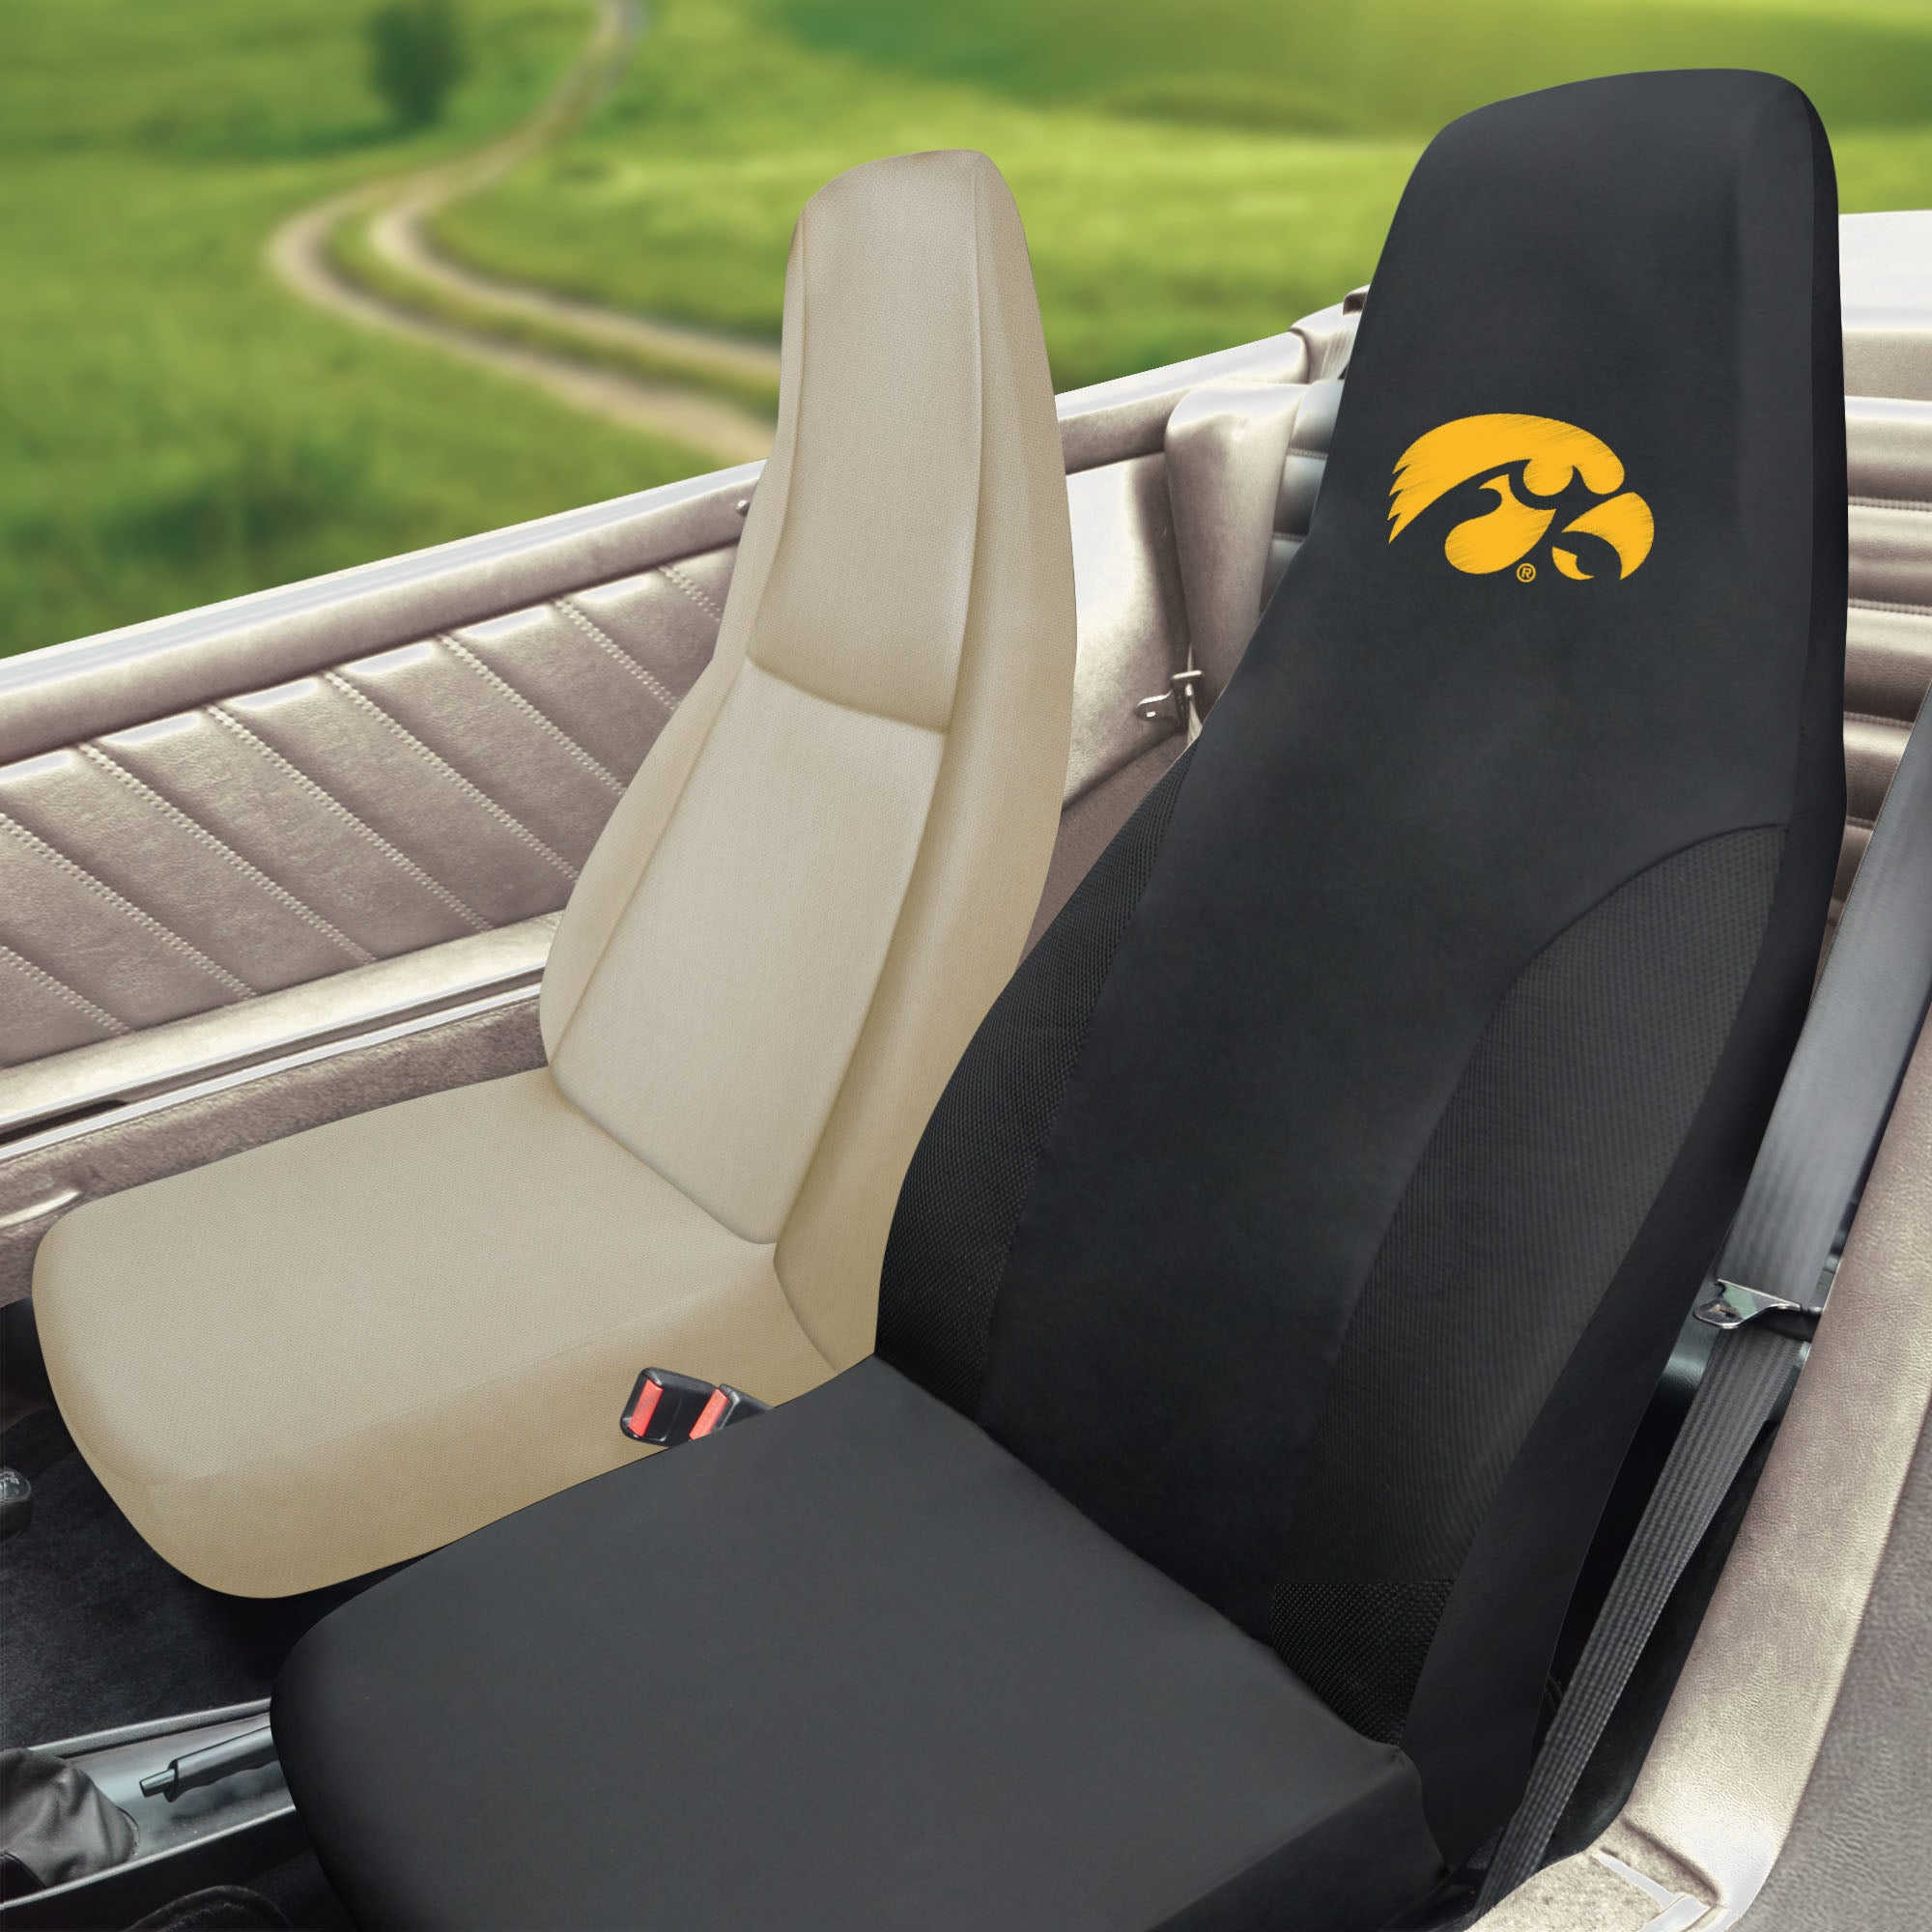 University of Iowa Set of 2 Car Seat Covers